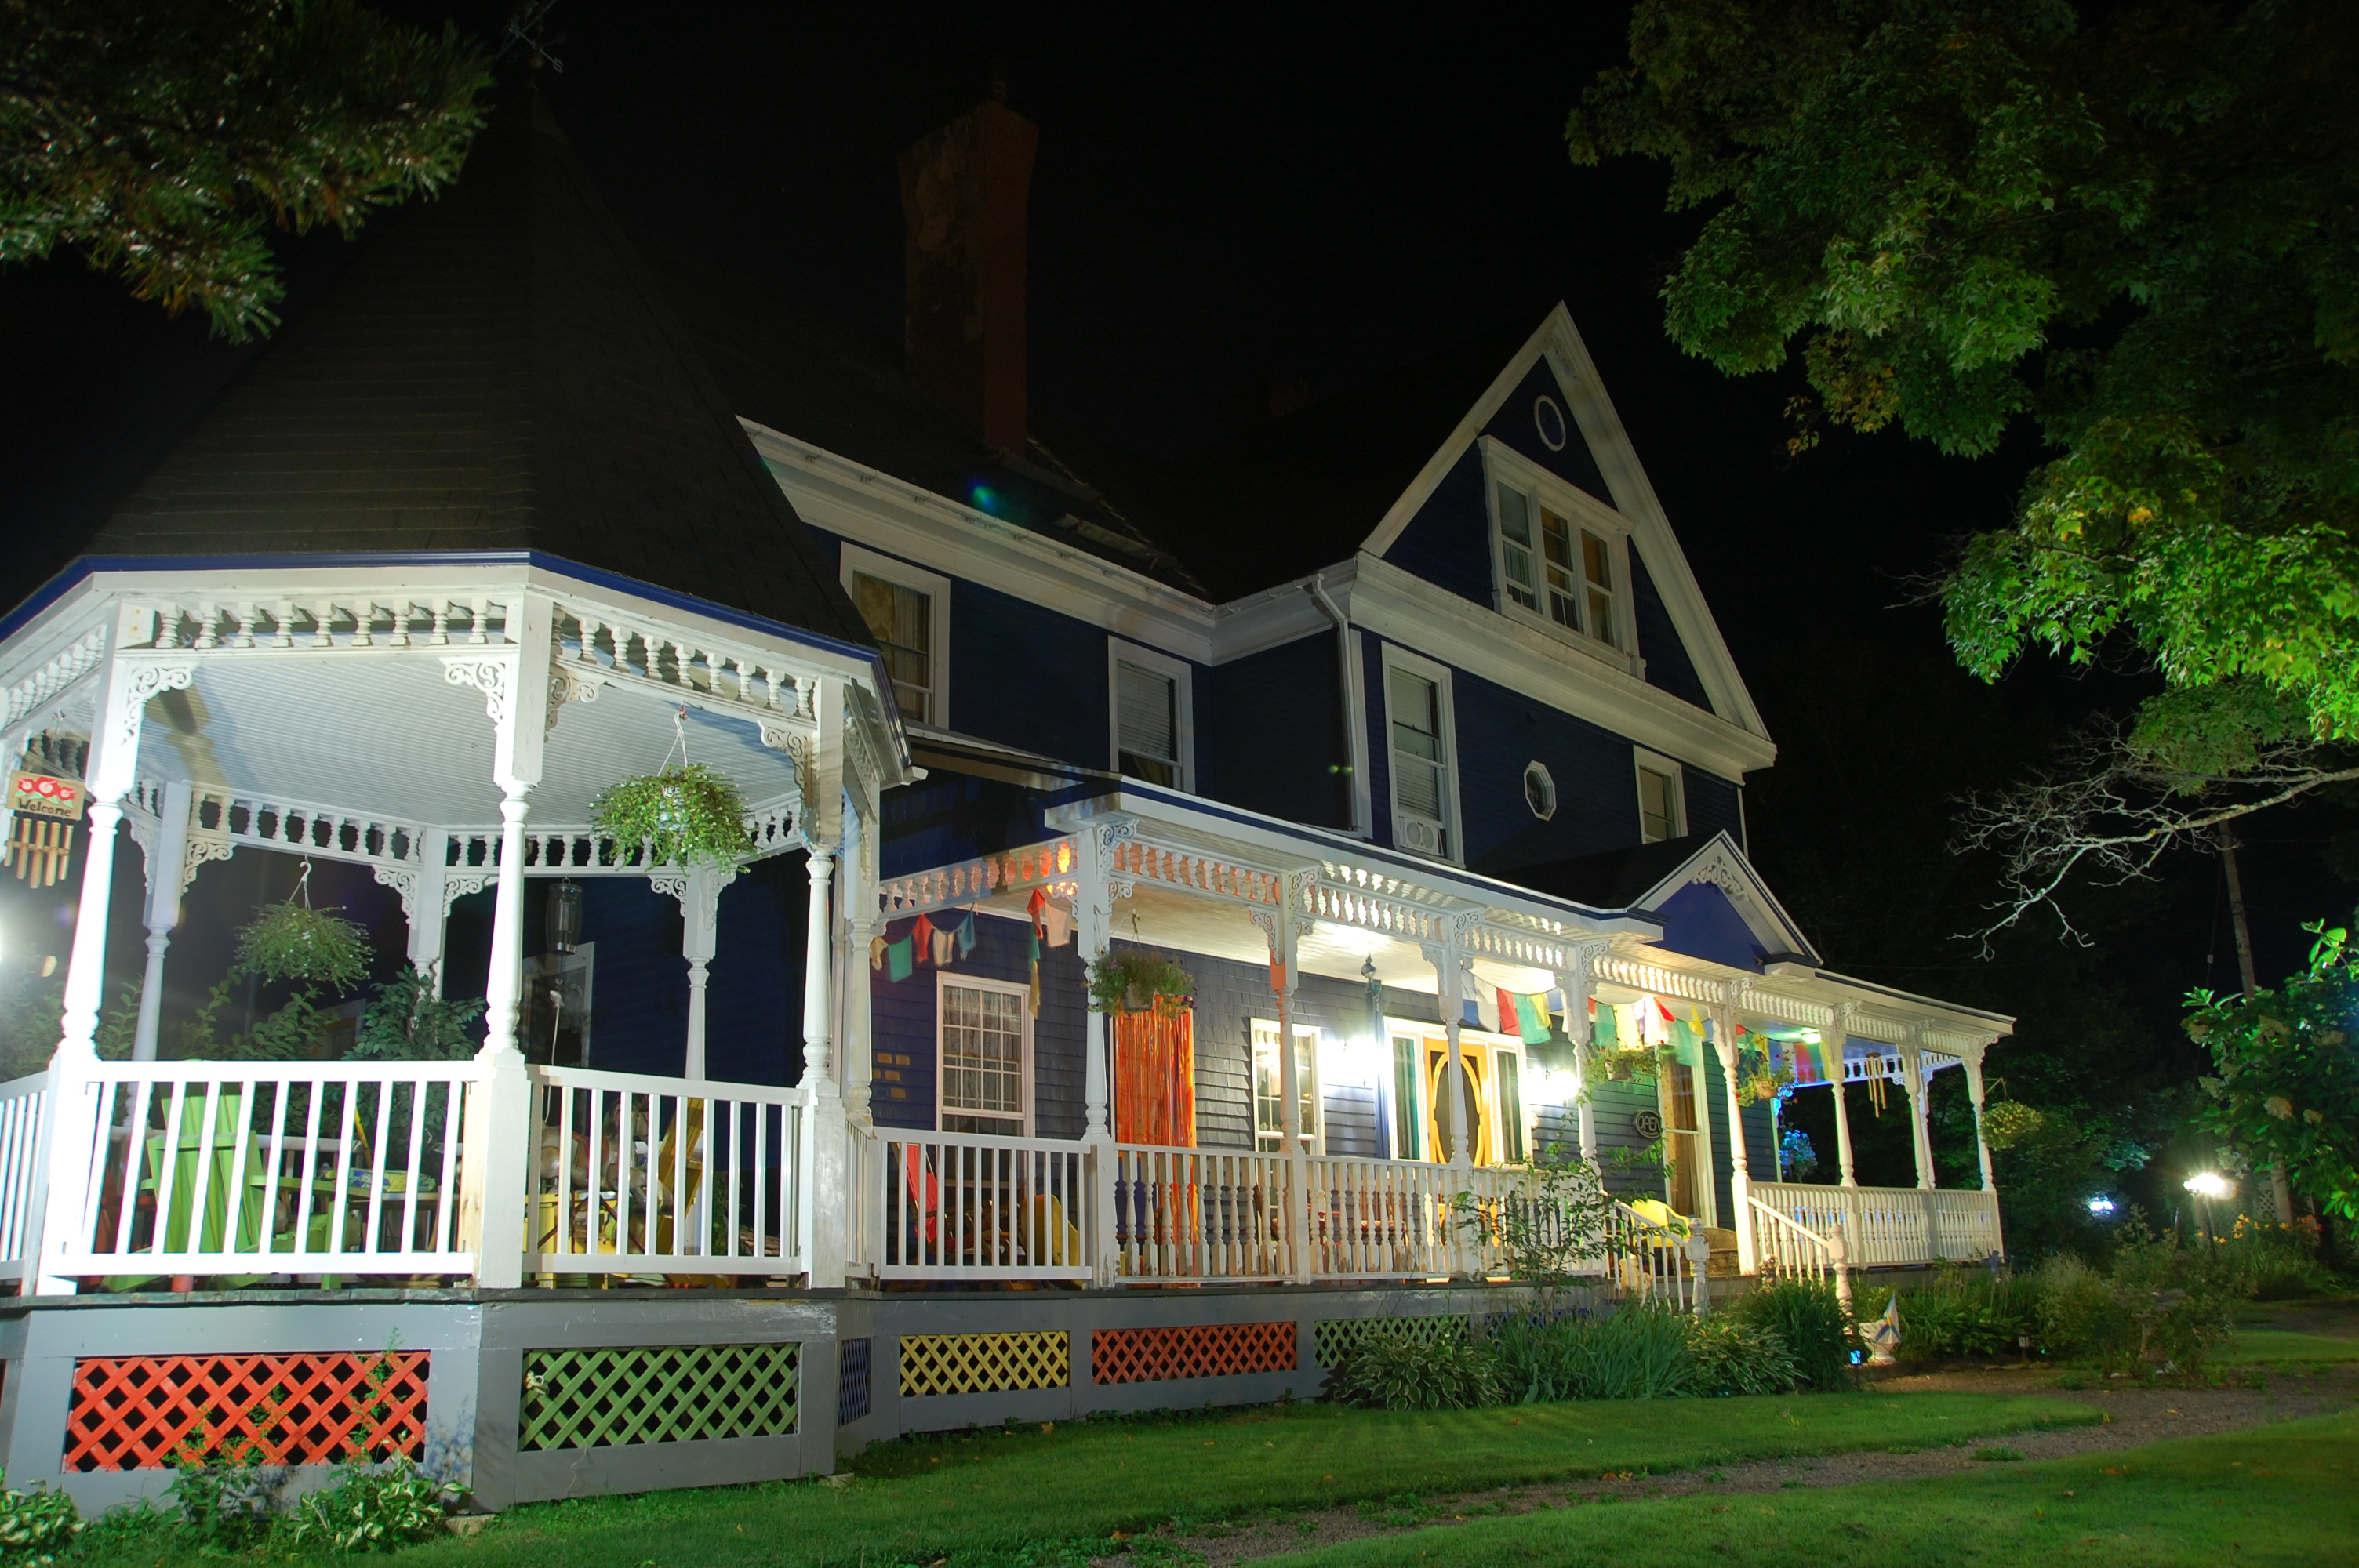 Wickwire House Bed and Breakfast